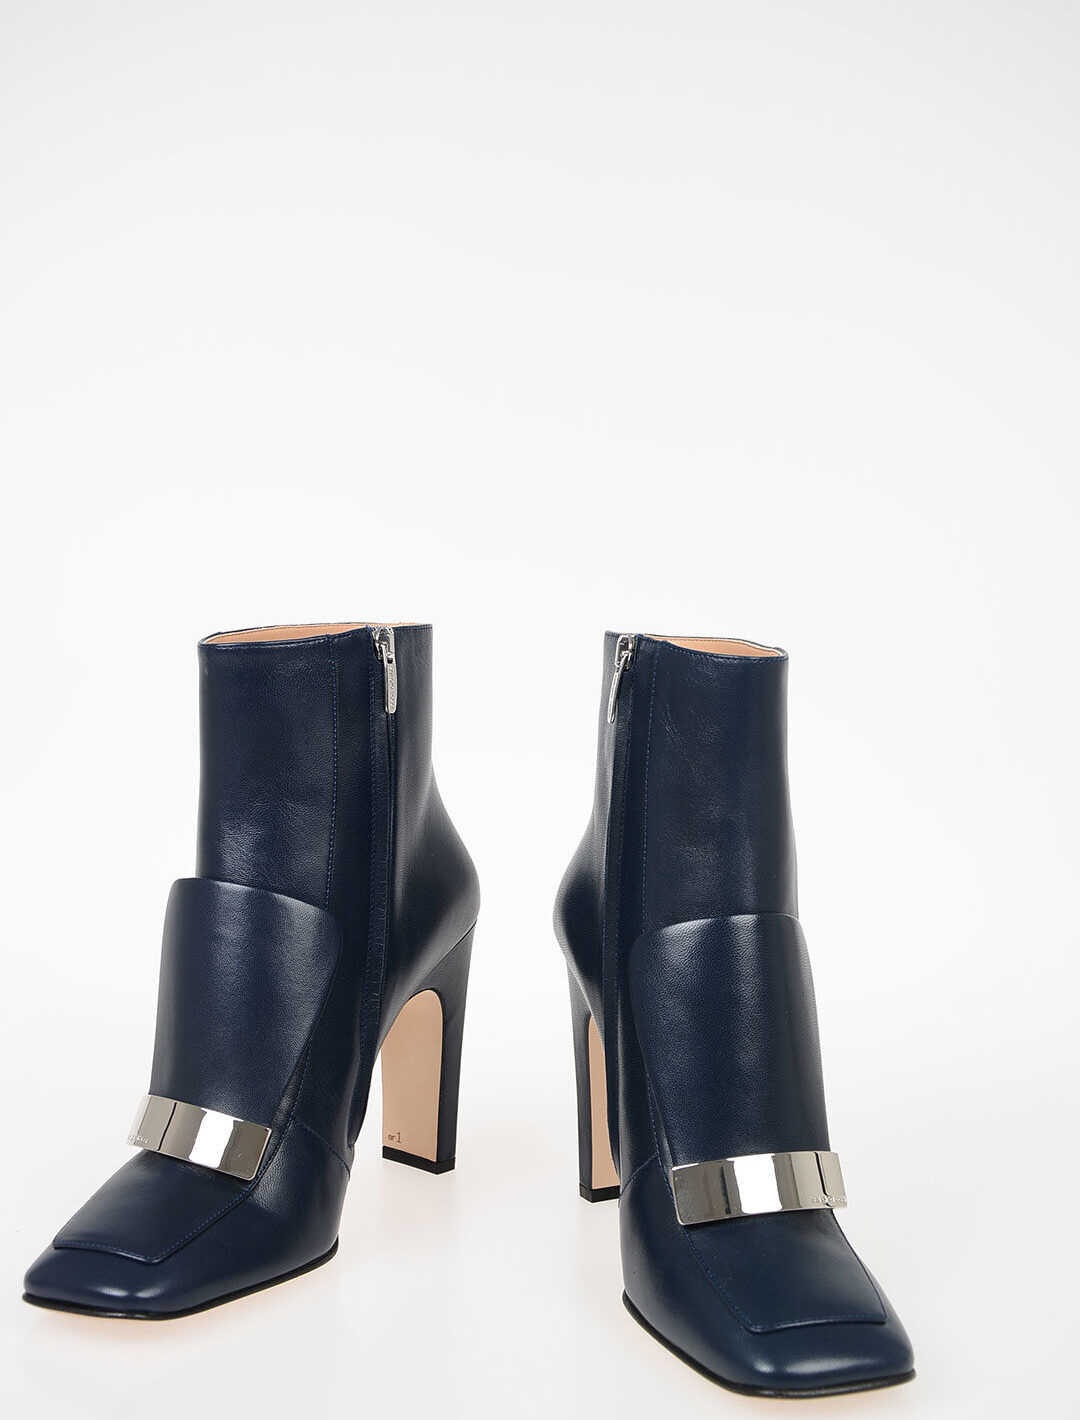 11cm Leather Nappa Seventy Boots thumbnail